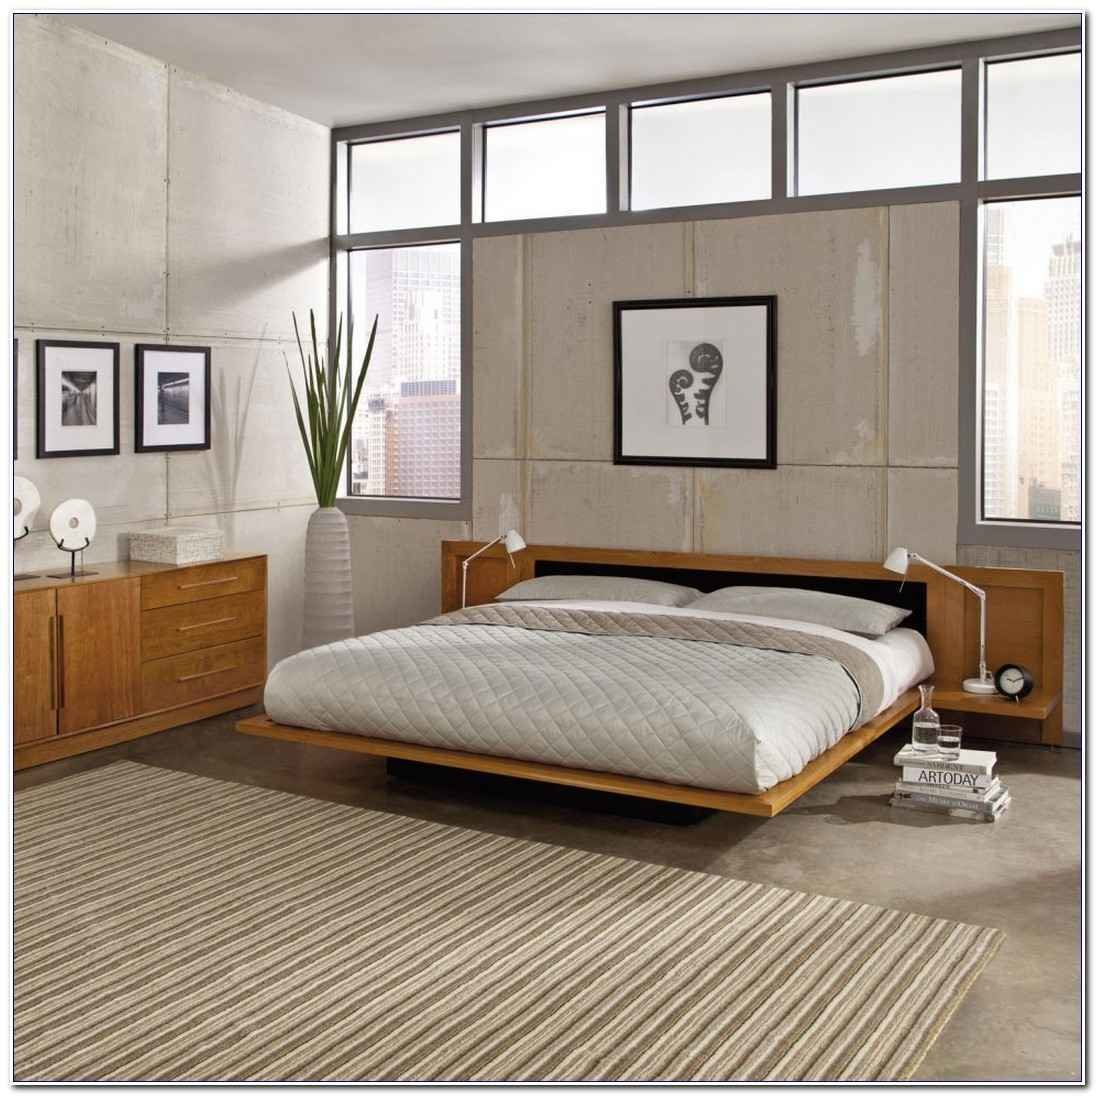 Best Modular Bedroom Furniture For Small Spaces – Bedroom Ideas With Pictures